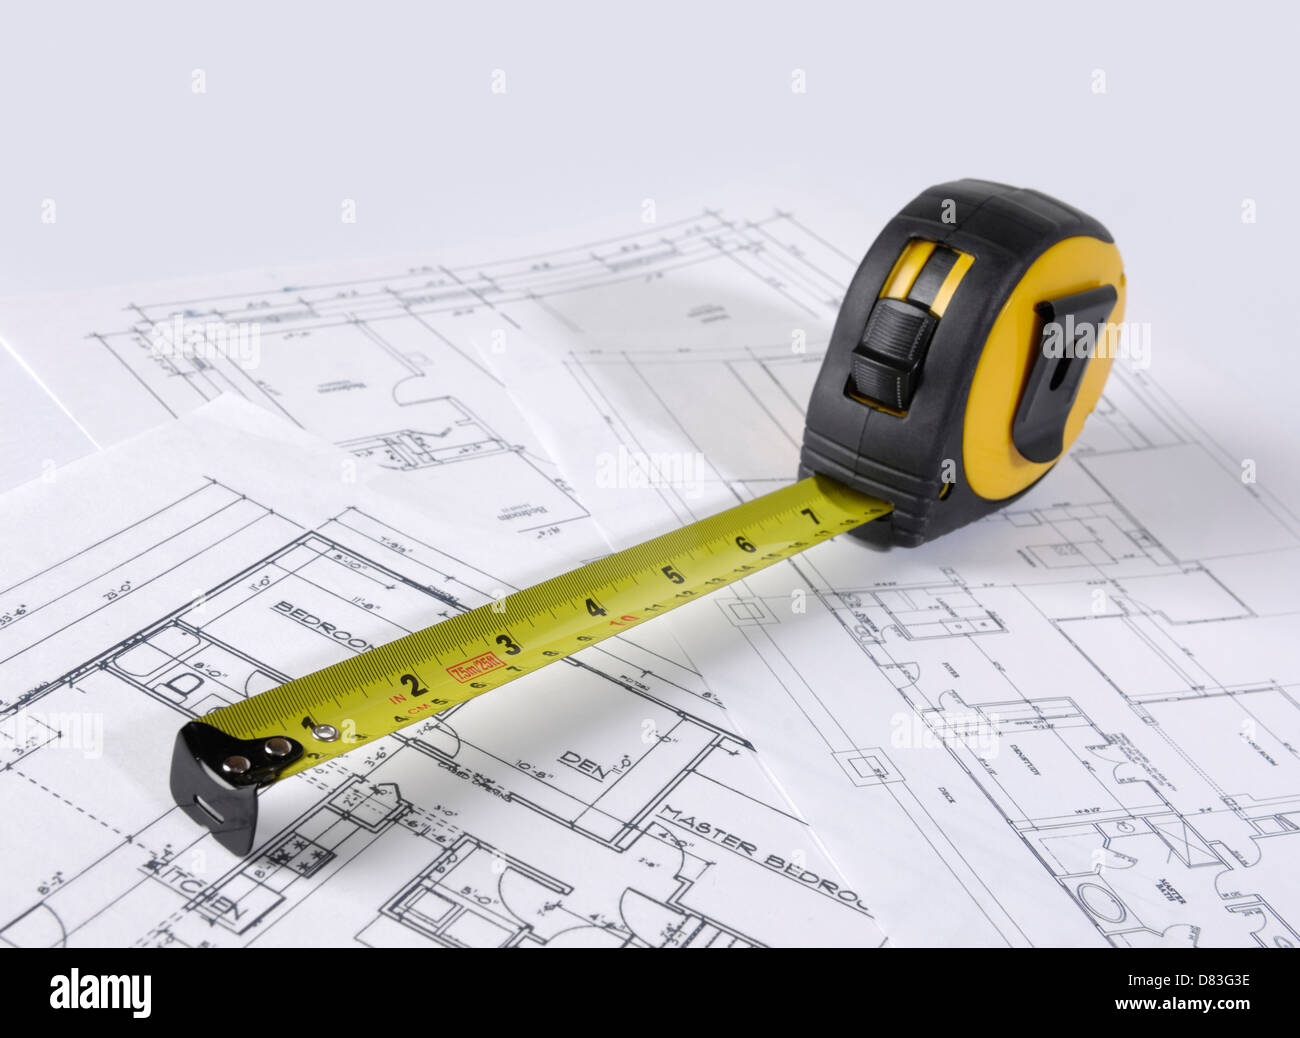 Tape measure on construction plans of a house - Stock Image